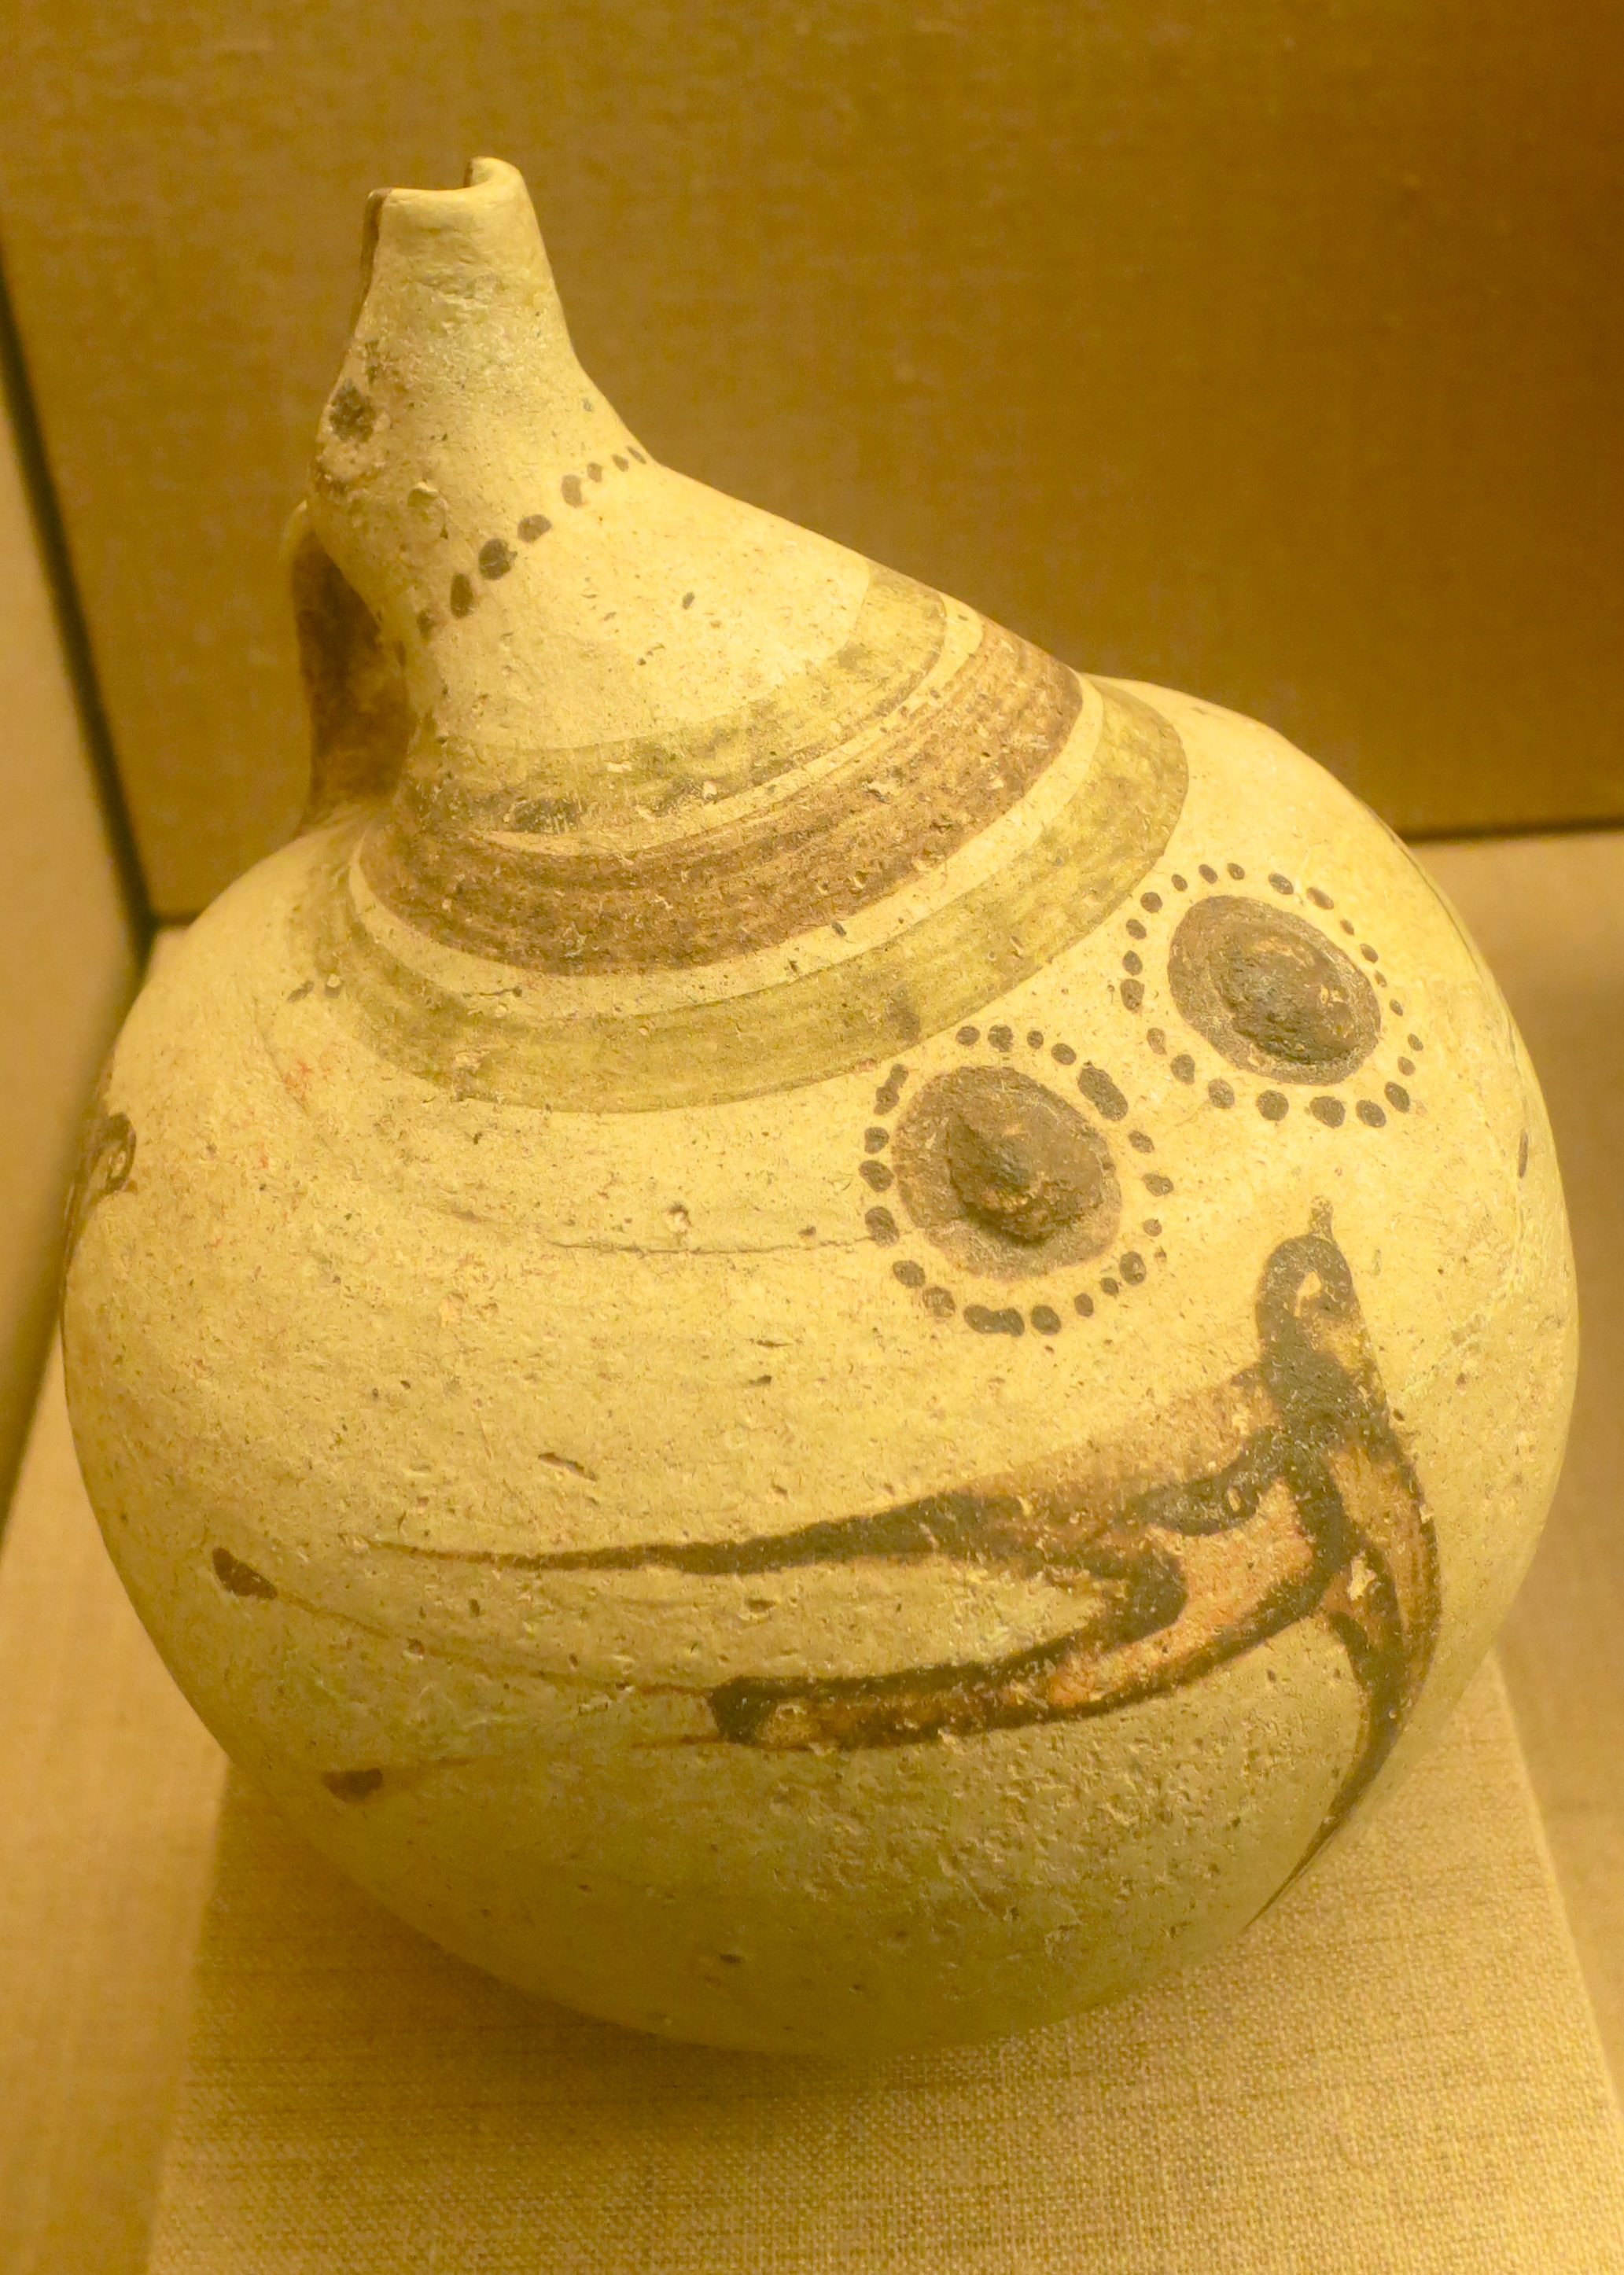 Another nipple ewer. This one featured a swallow. Both wild and domestic animals were featured prominently on Akrotiri artifacts. The yellow color, BTW, is because of the lights used by the museum to protect the ancient works of art.